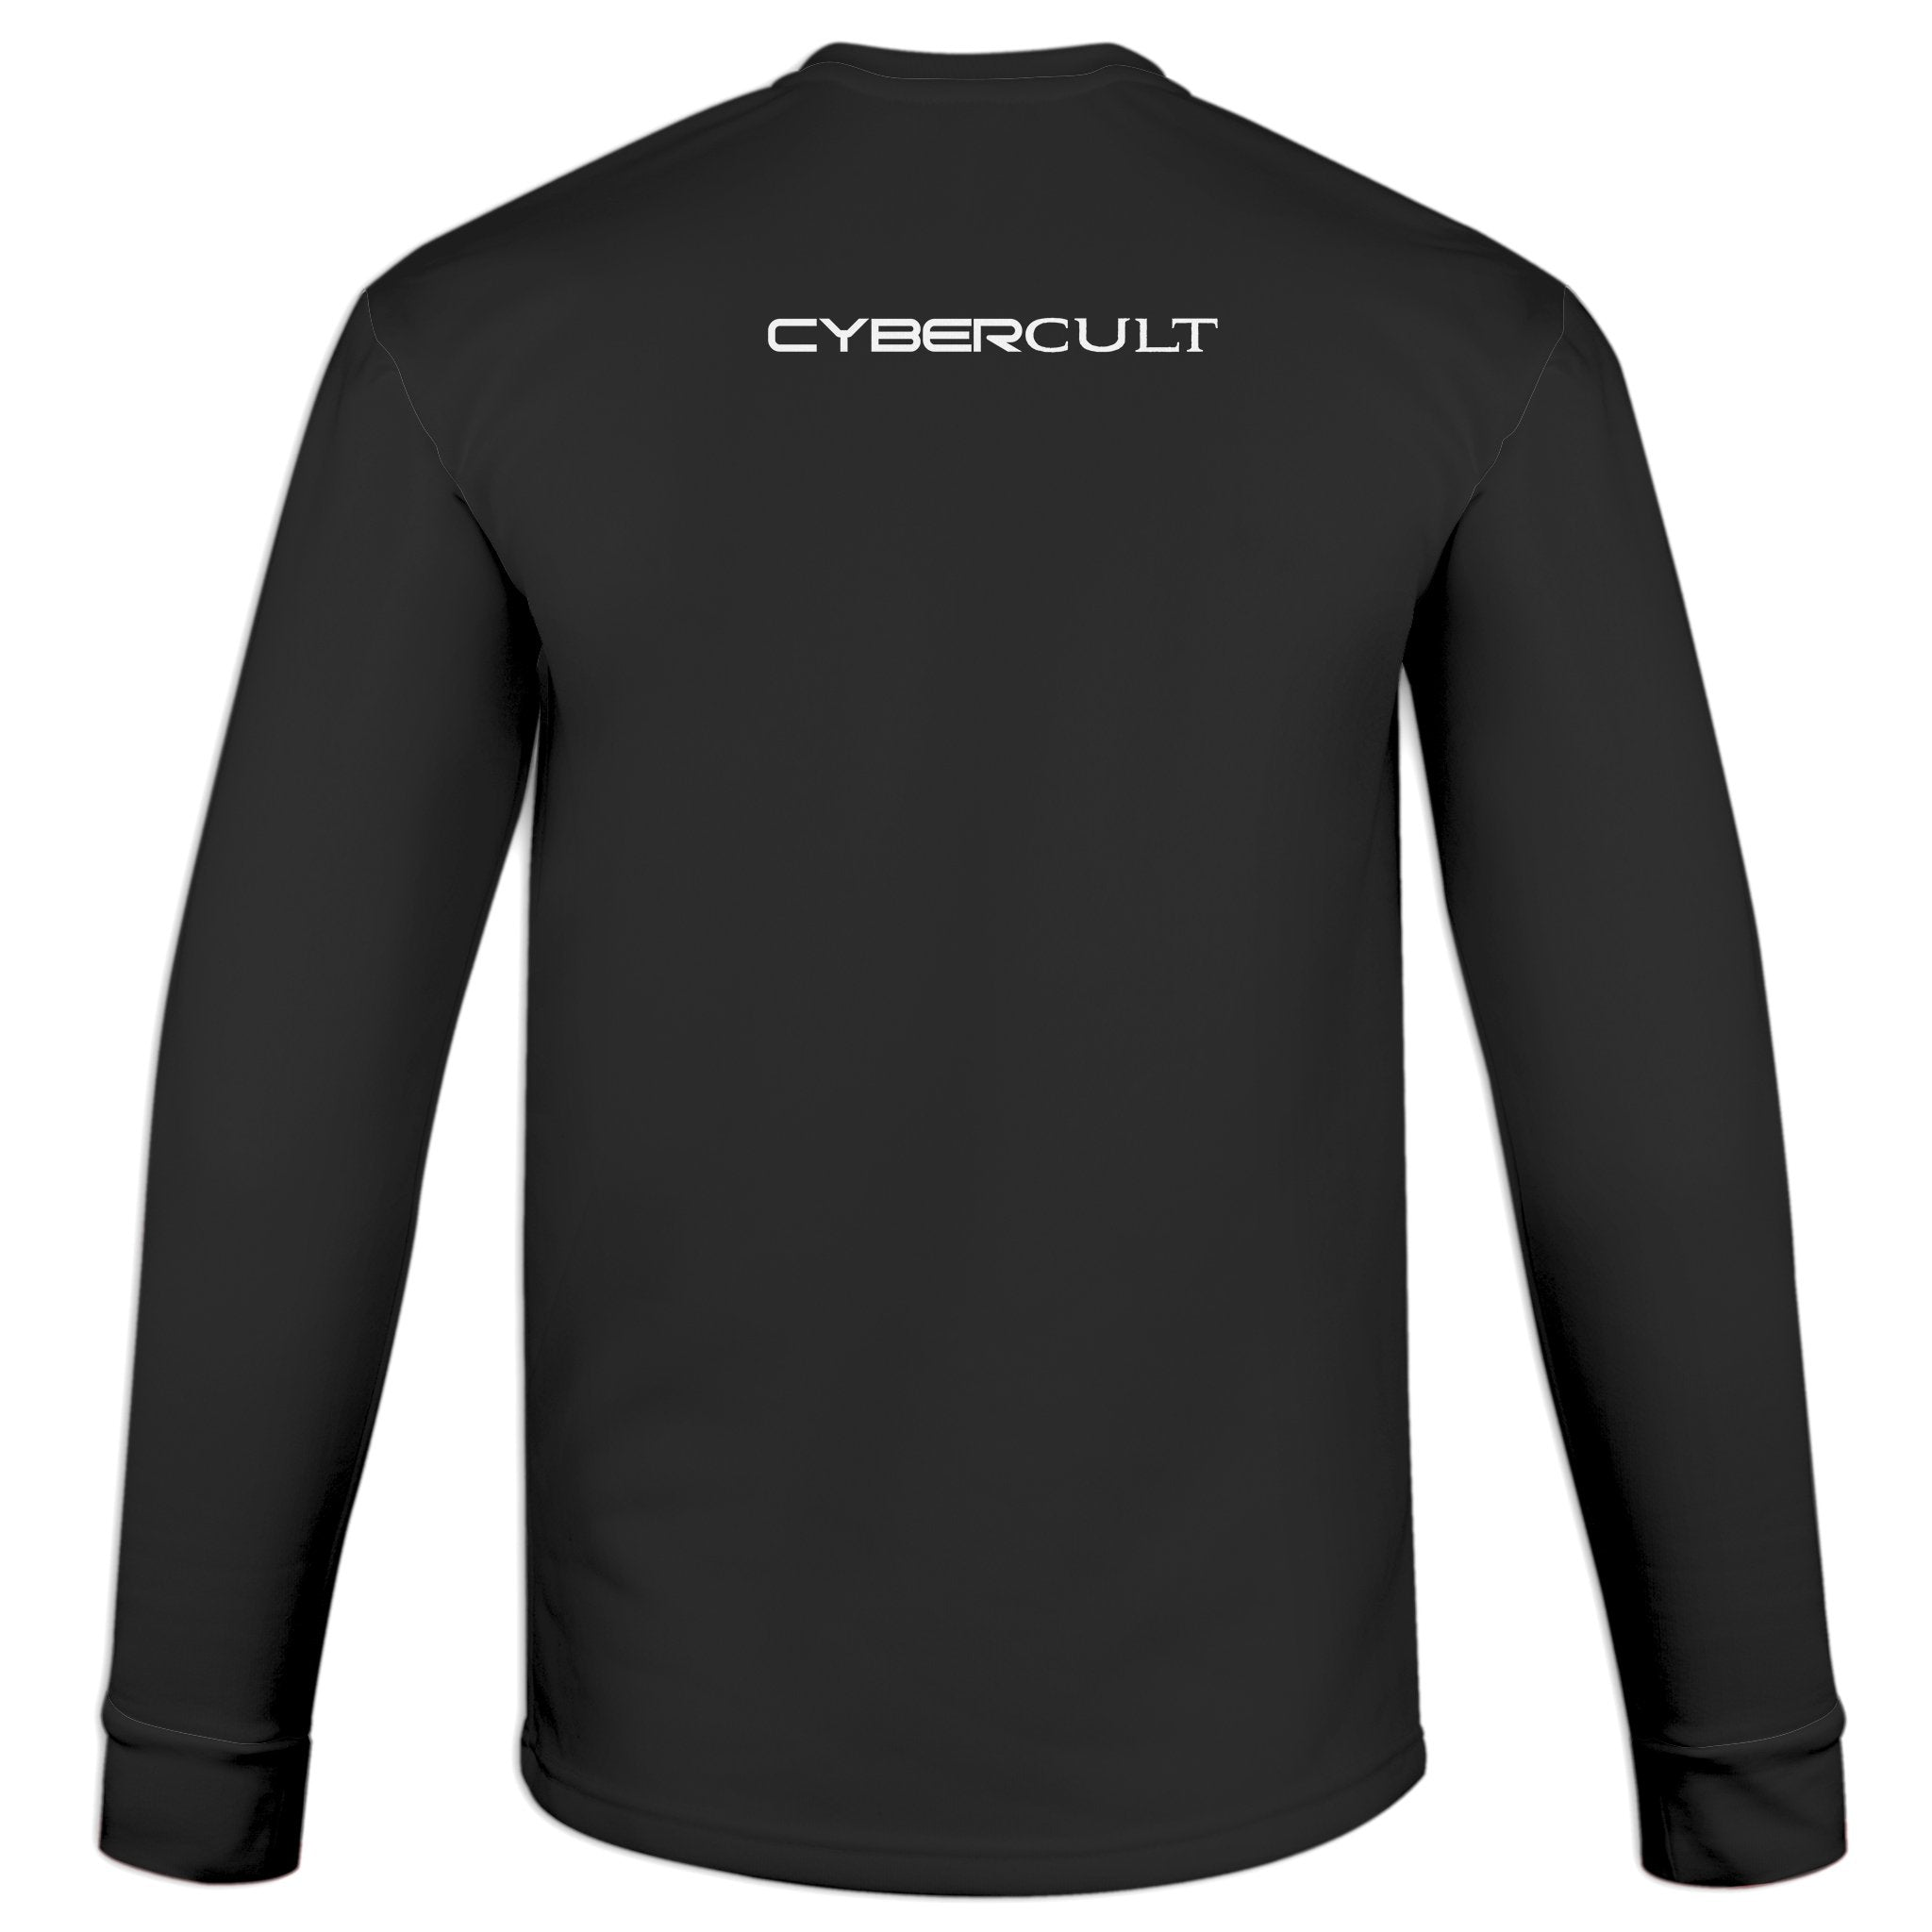 Nested Moon Sigil :: Black Sweatshirt | Cybercult.net